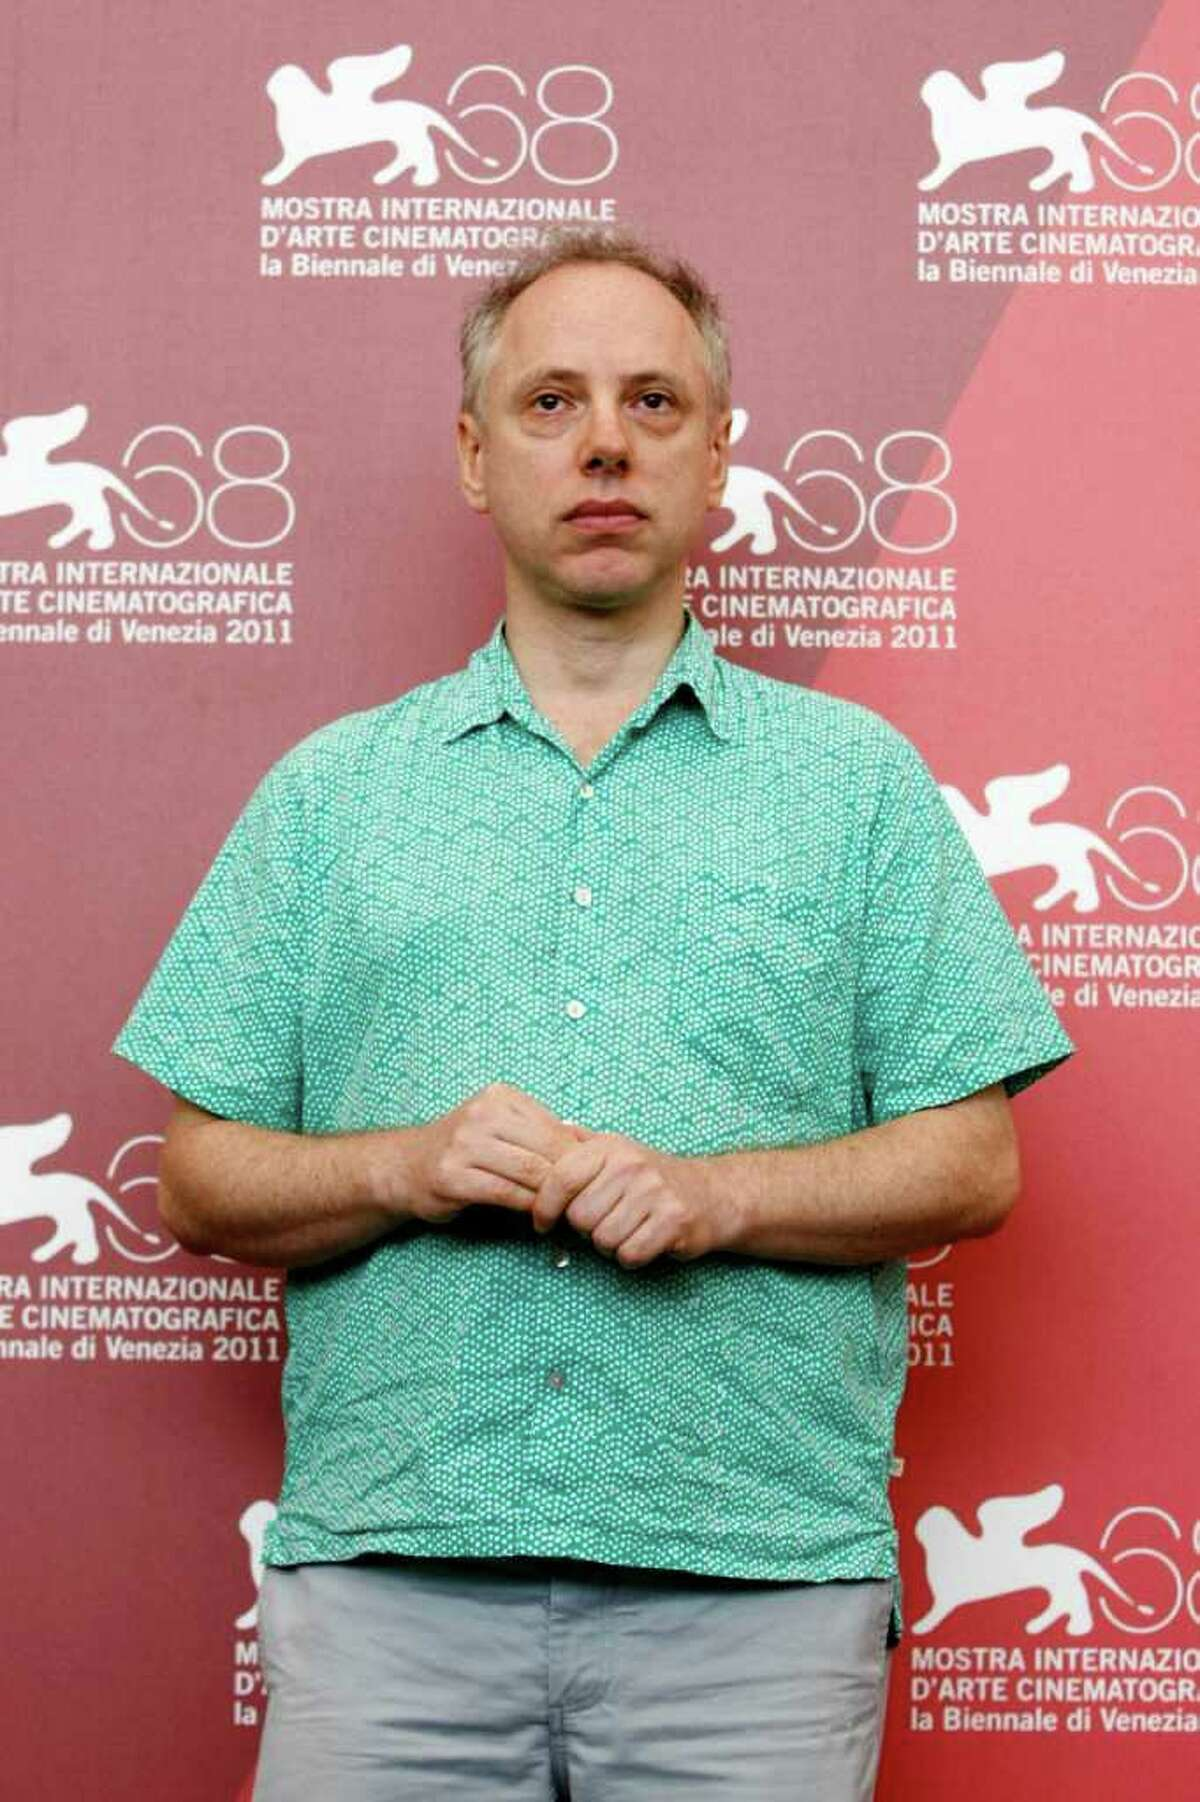 Director Todd Solondz poses during the photo call for the movie Dark Horse at the 68th edition of the Venice Film Festival in Venice, Italy, Monday, Sept. 5, 2011. (AP Photo/Andrew Medichini)